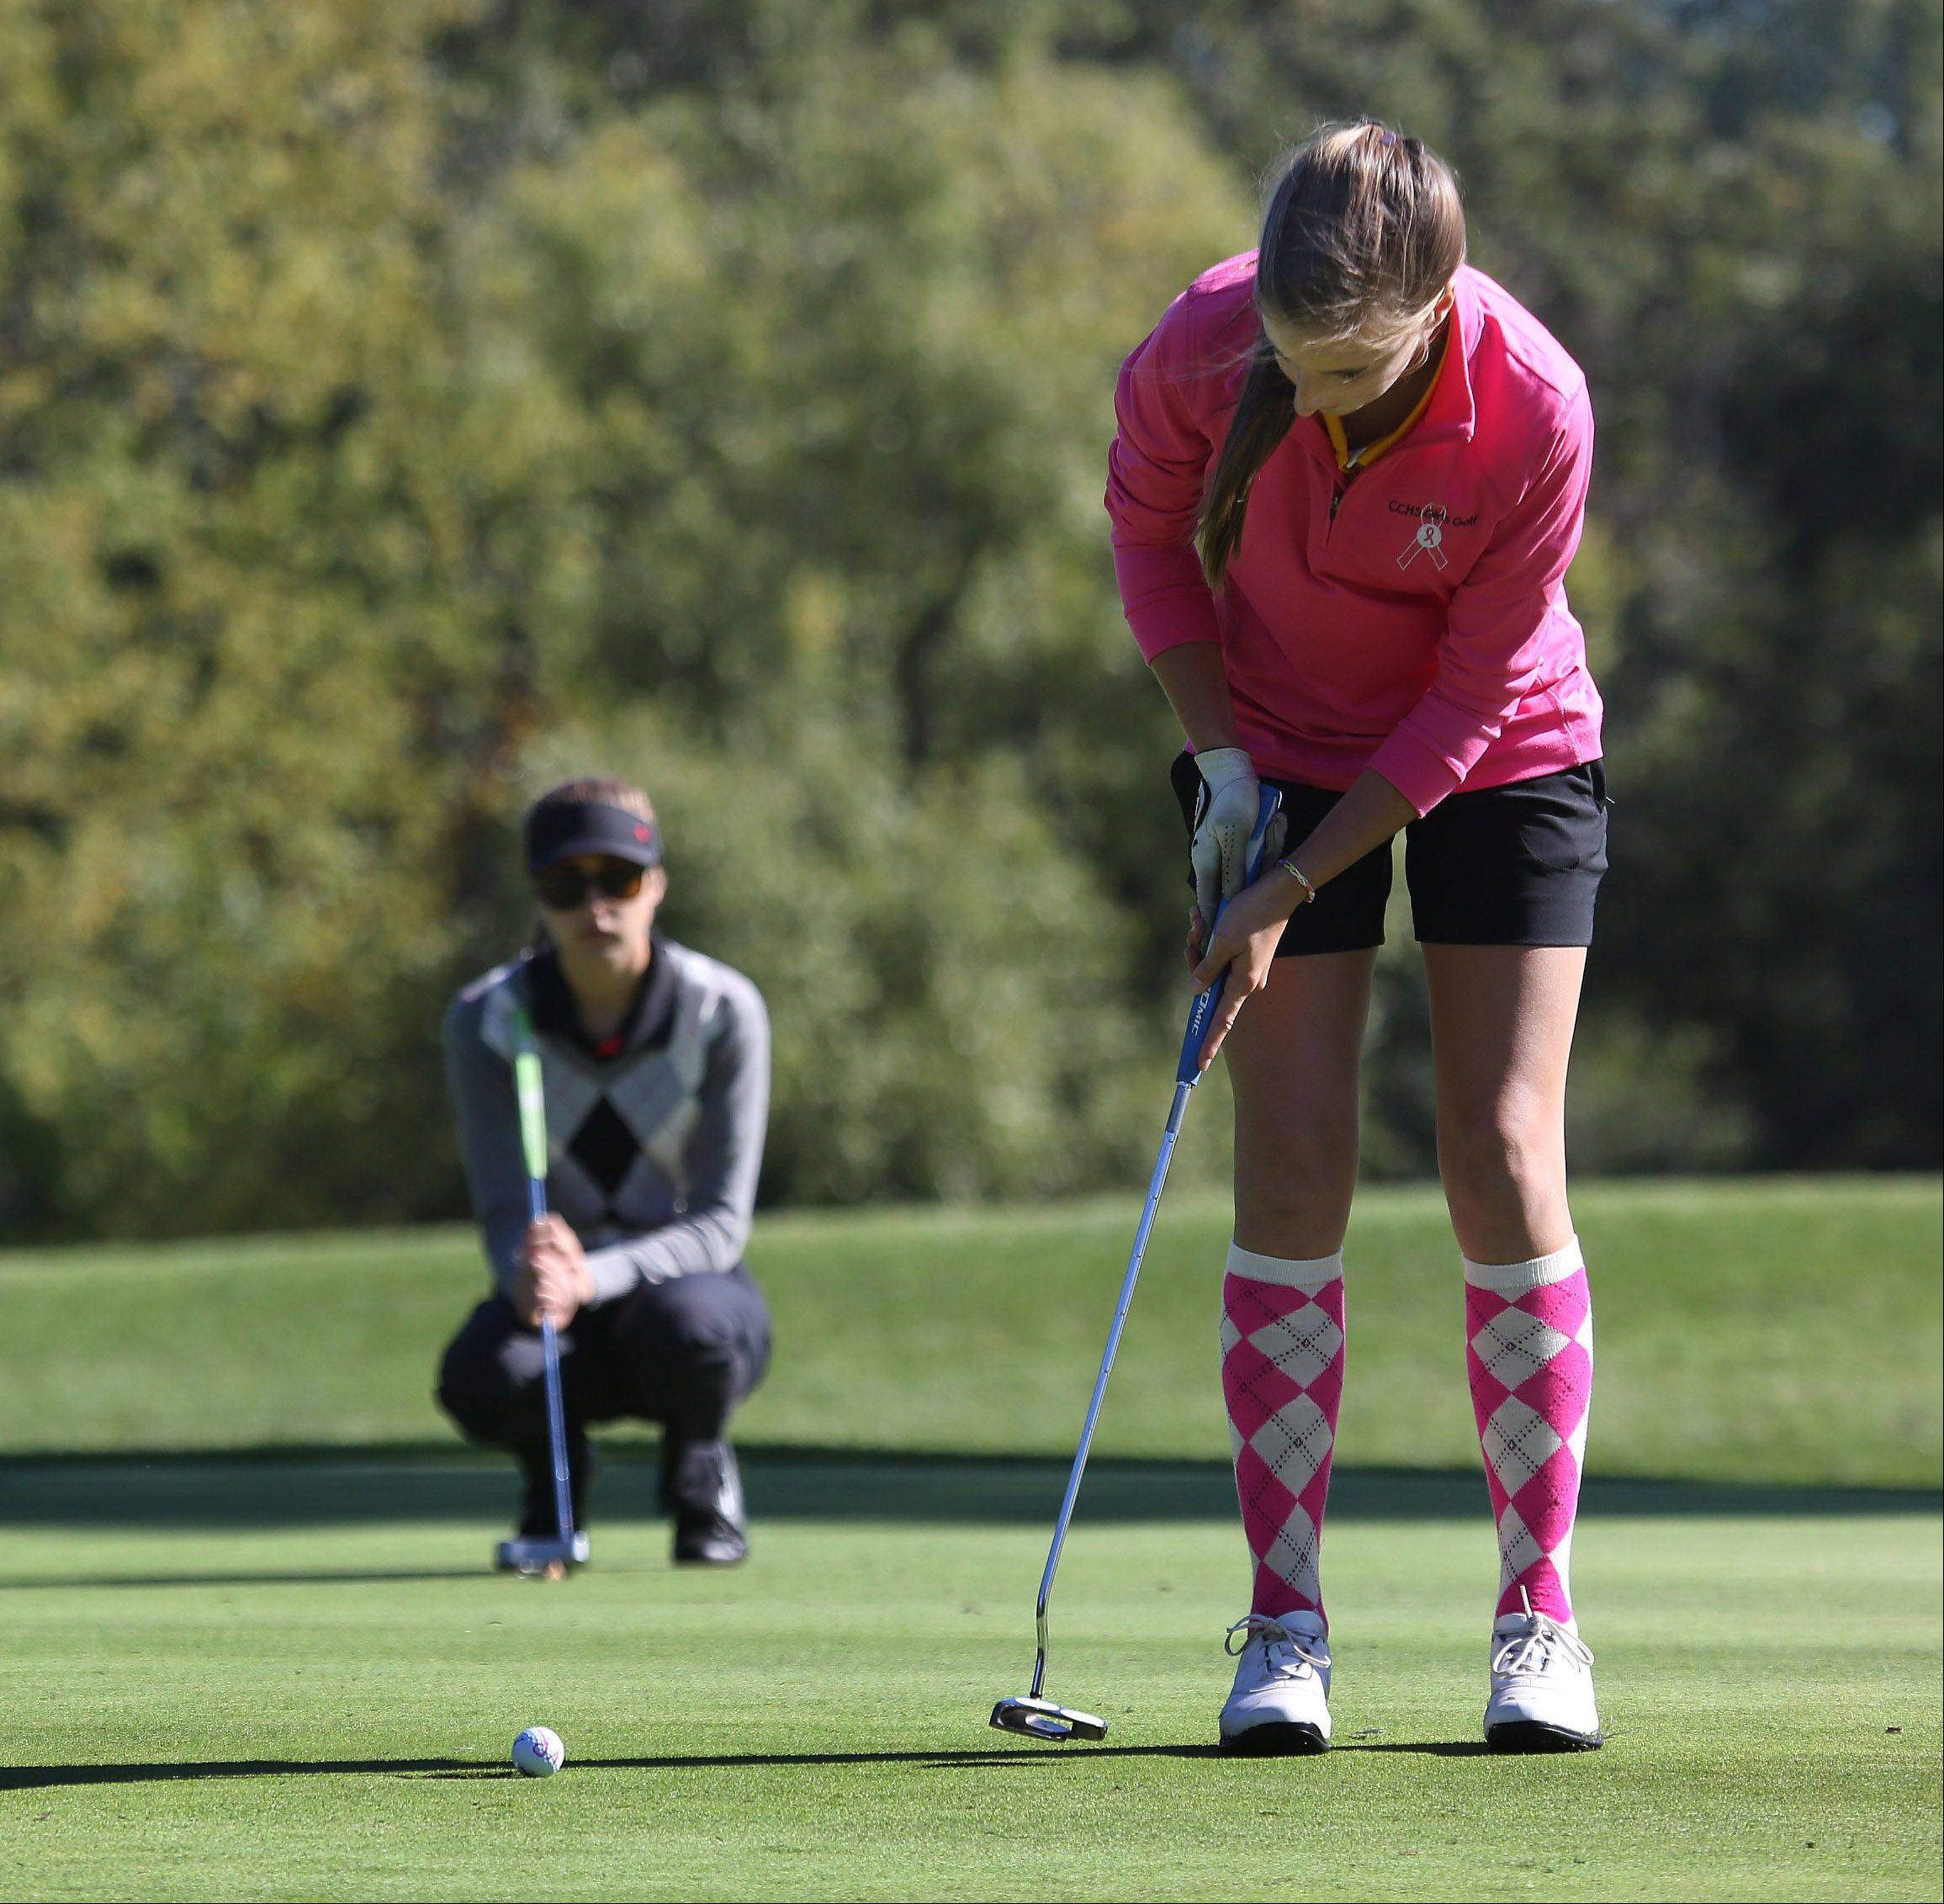 Carmel Catholic golfer Kayla Ryan putts on the second hole during the Class AA Carmel girls golf regional Wednesday at Bonnie Brook.